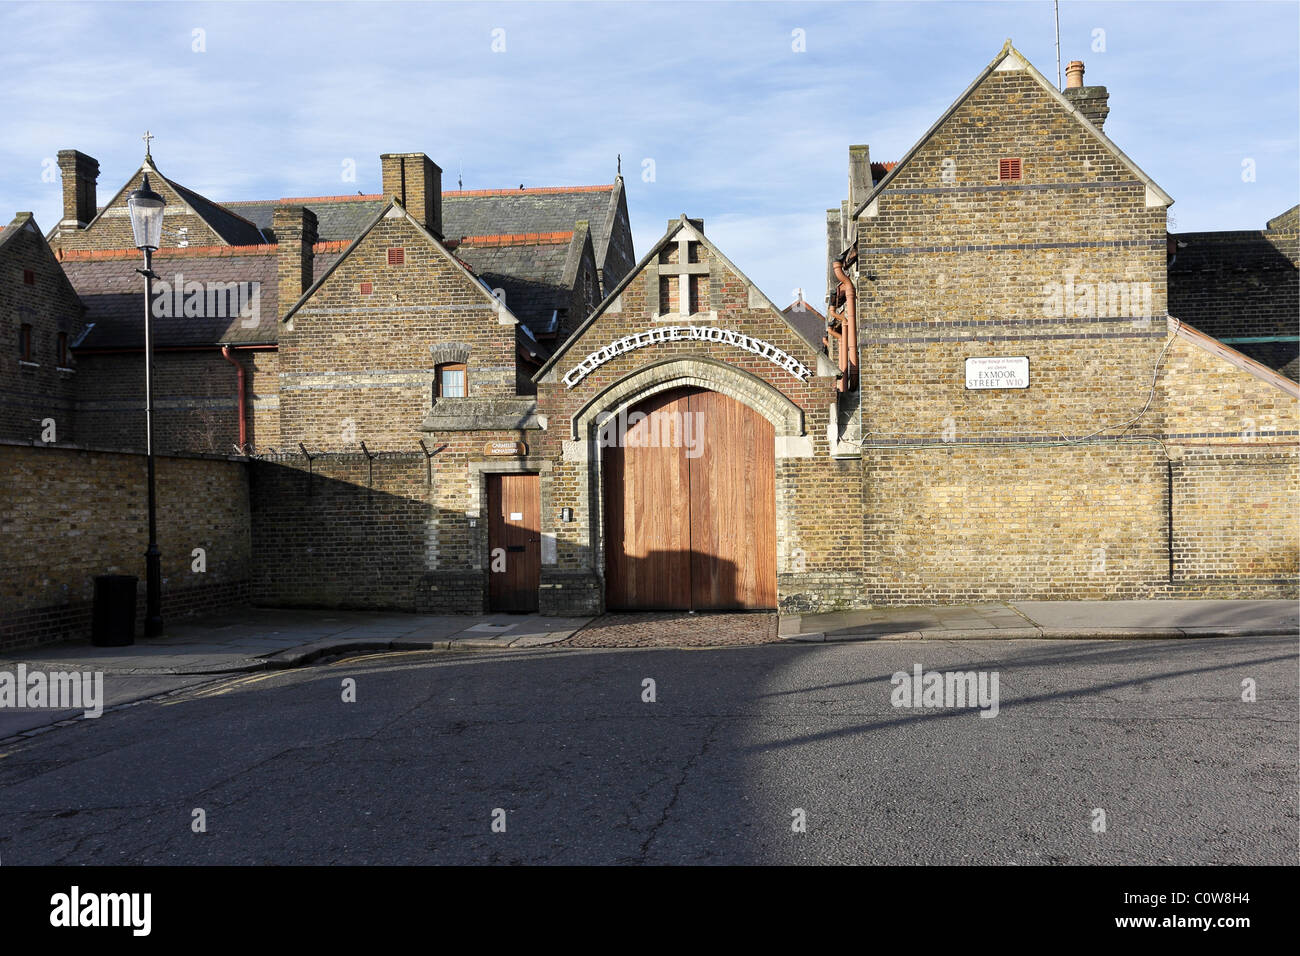 CARMELITE MONASTERY, this is a view of the main entrance to the said